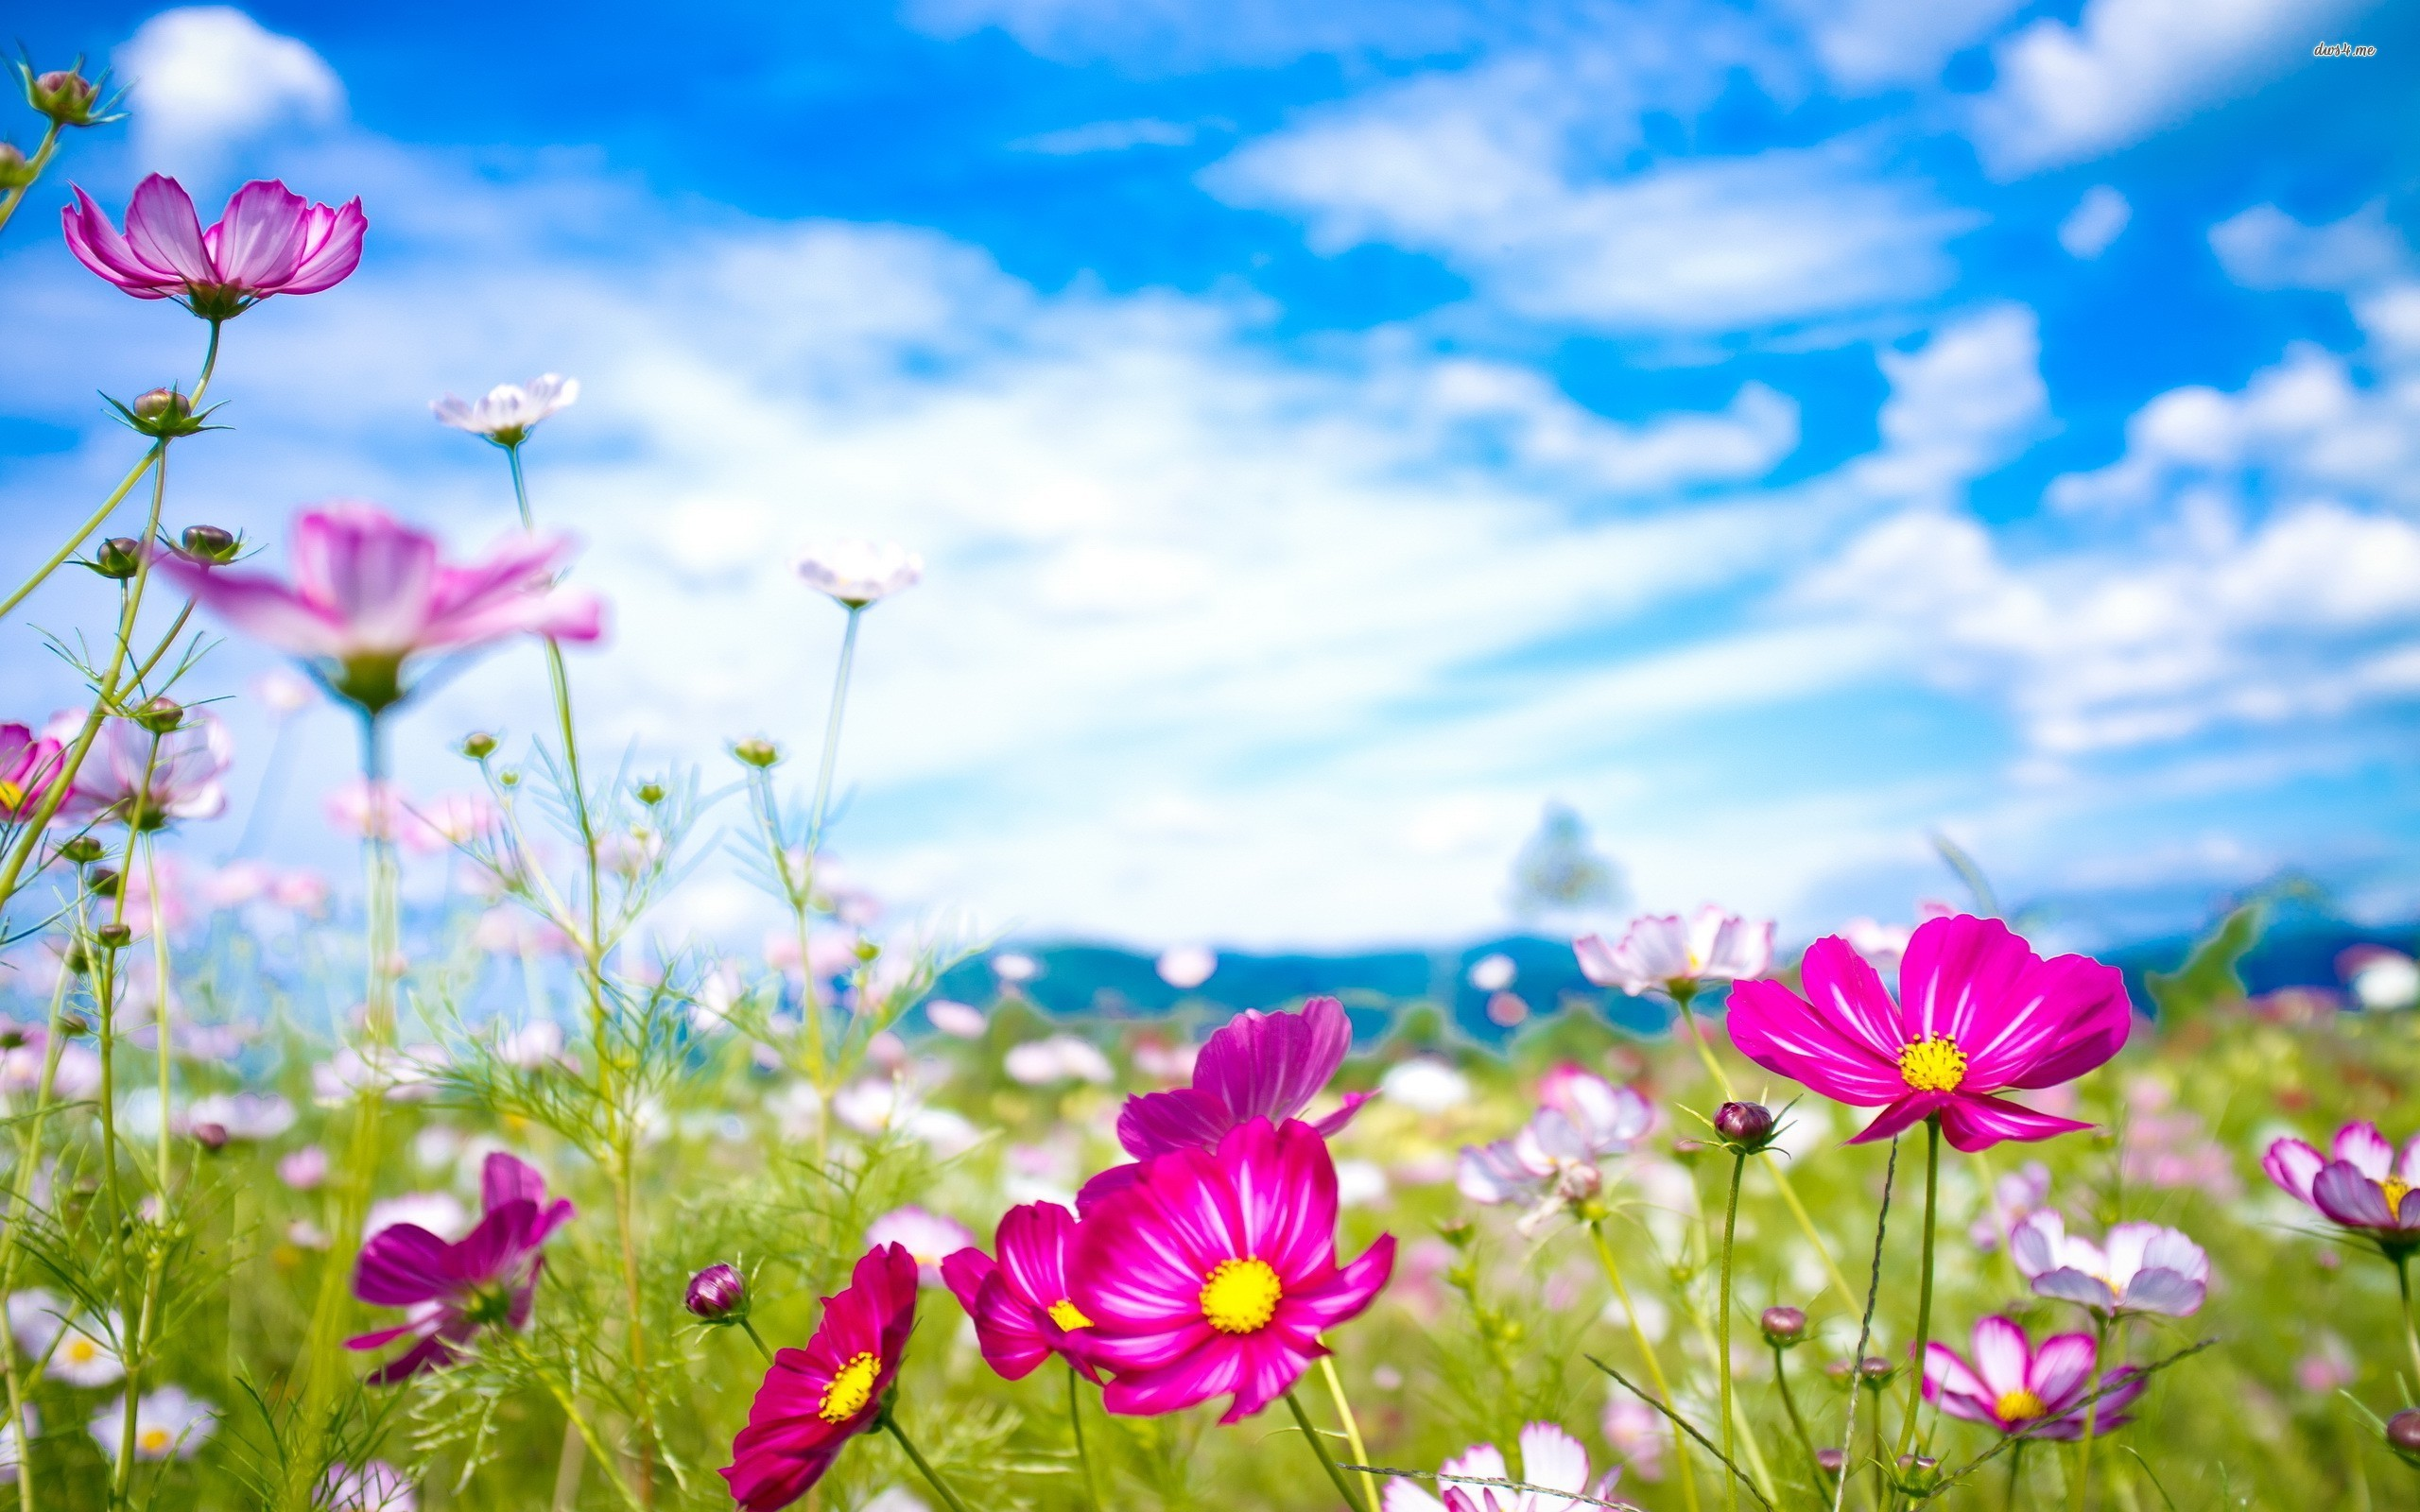 21568-colorful-cosmos-flowers-2560×1600-flower-wallpaper